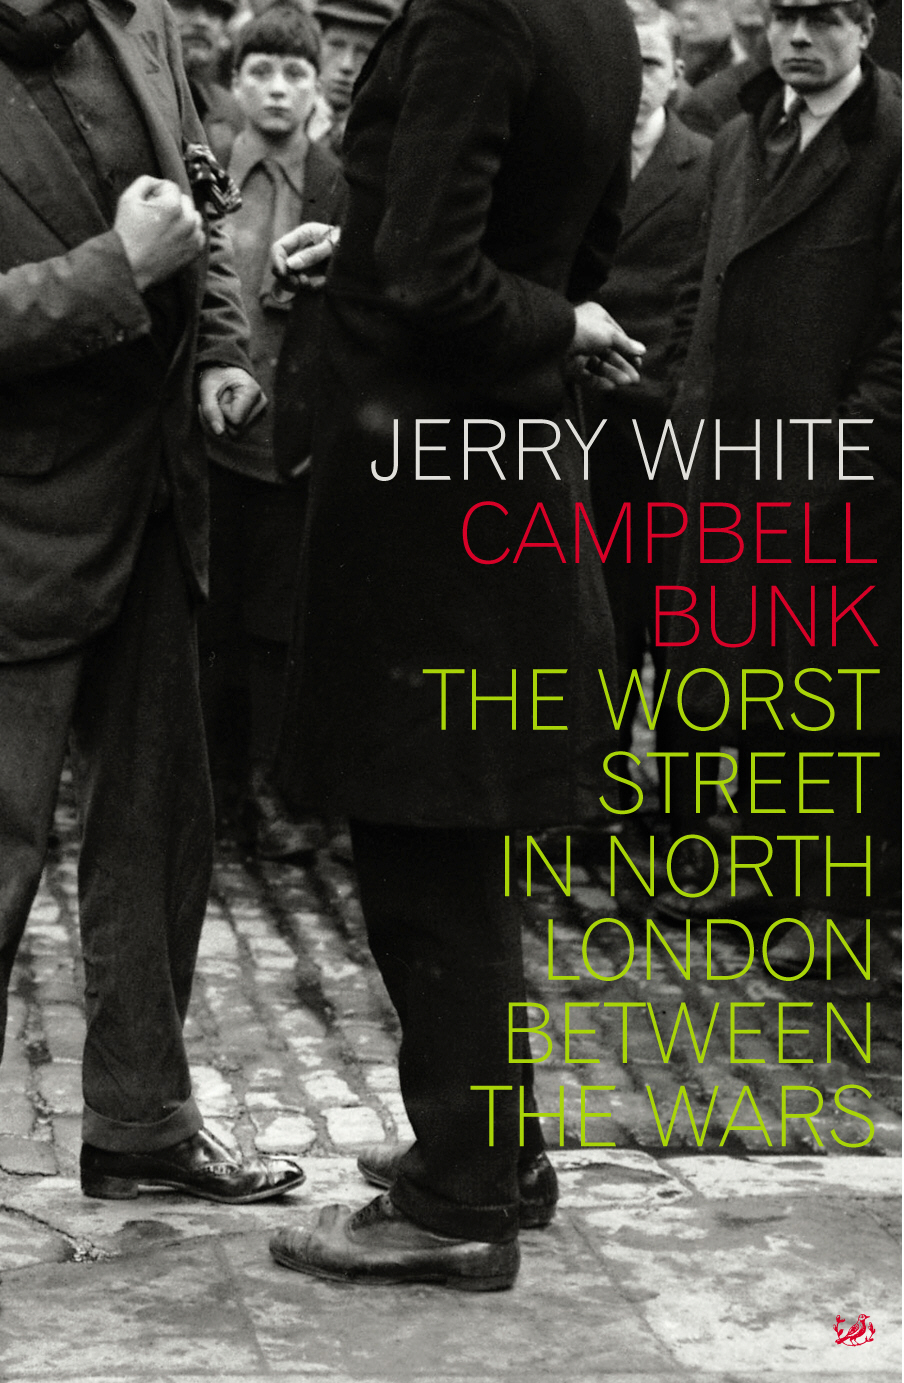 Campbell Bunk The Worst Street in North London Between the Wars